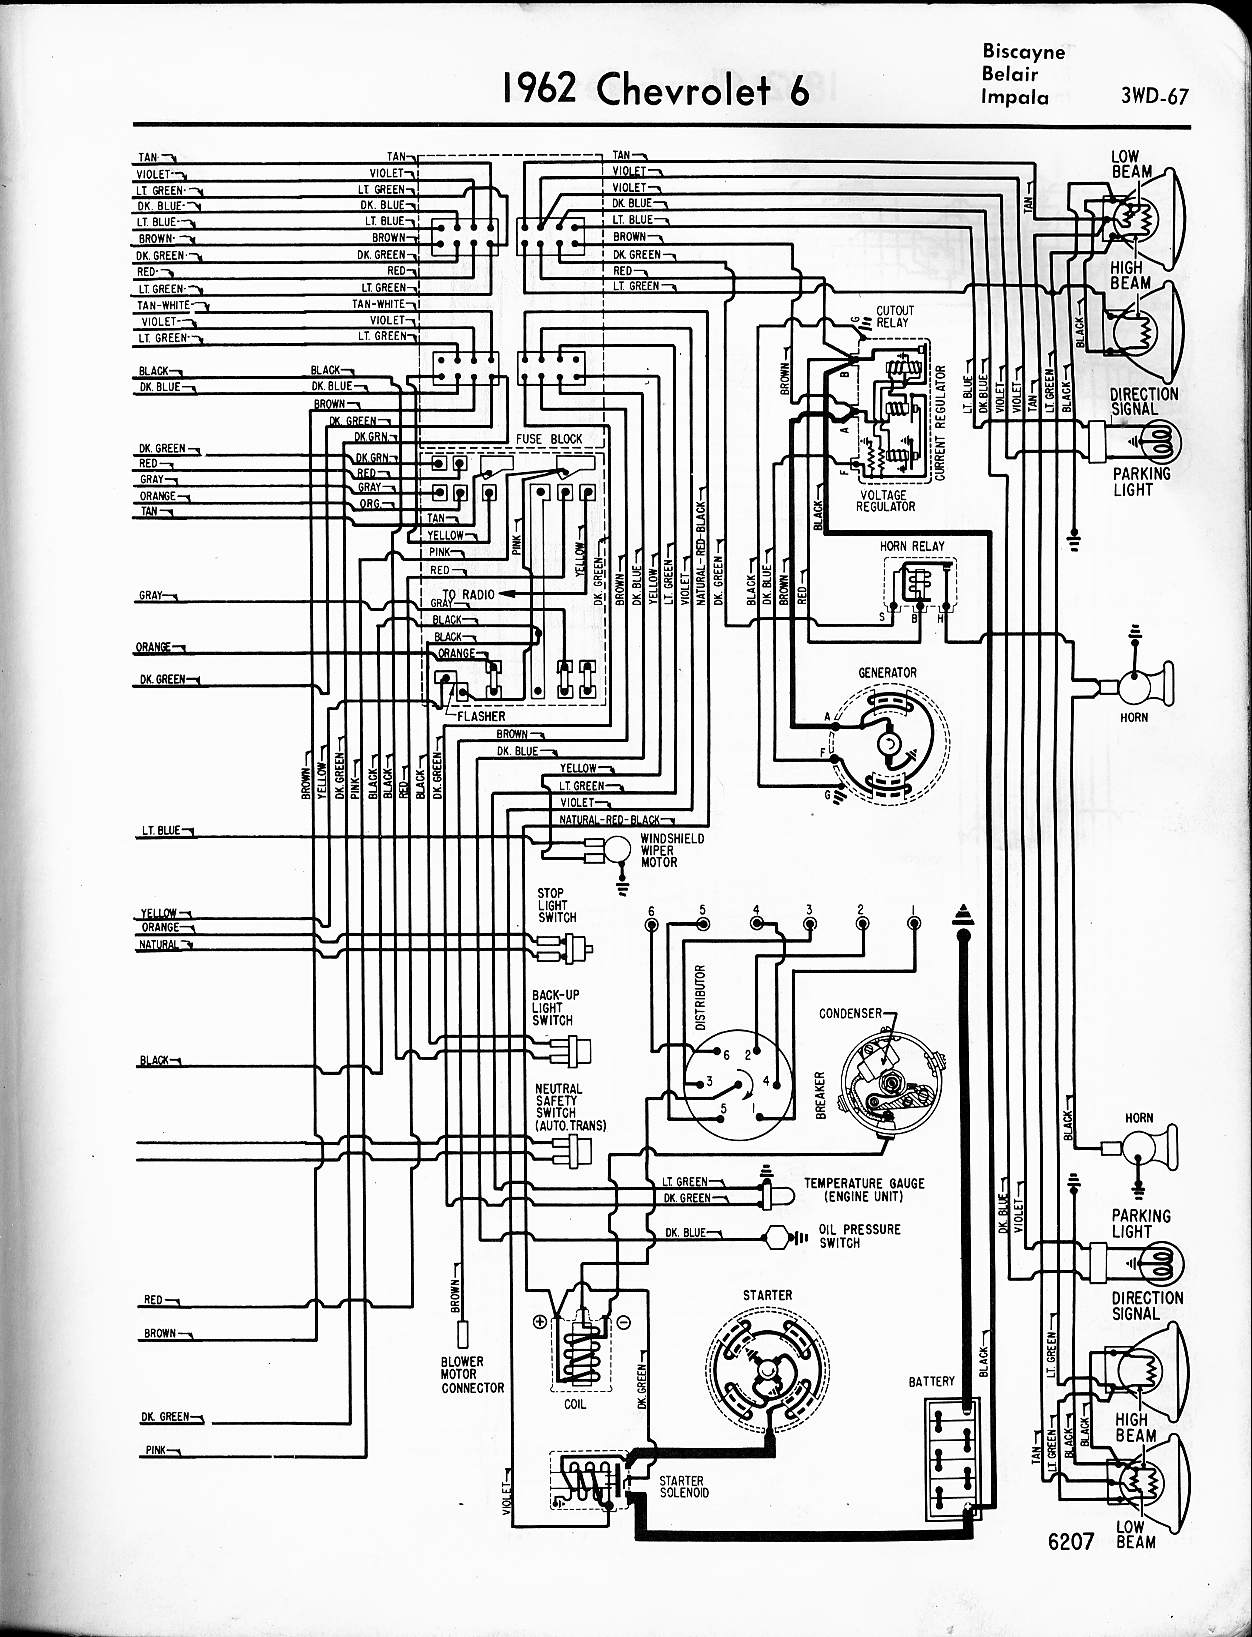 62 impala wiring diagrams wiring diagram todays57 65 chevy wiring diagrams ford headlight switch wiring diagram 62 impala wiring diagrams